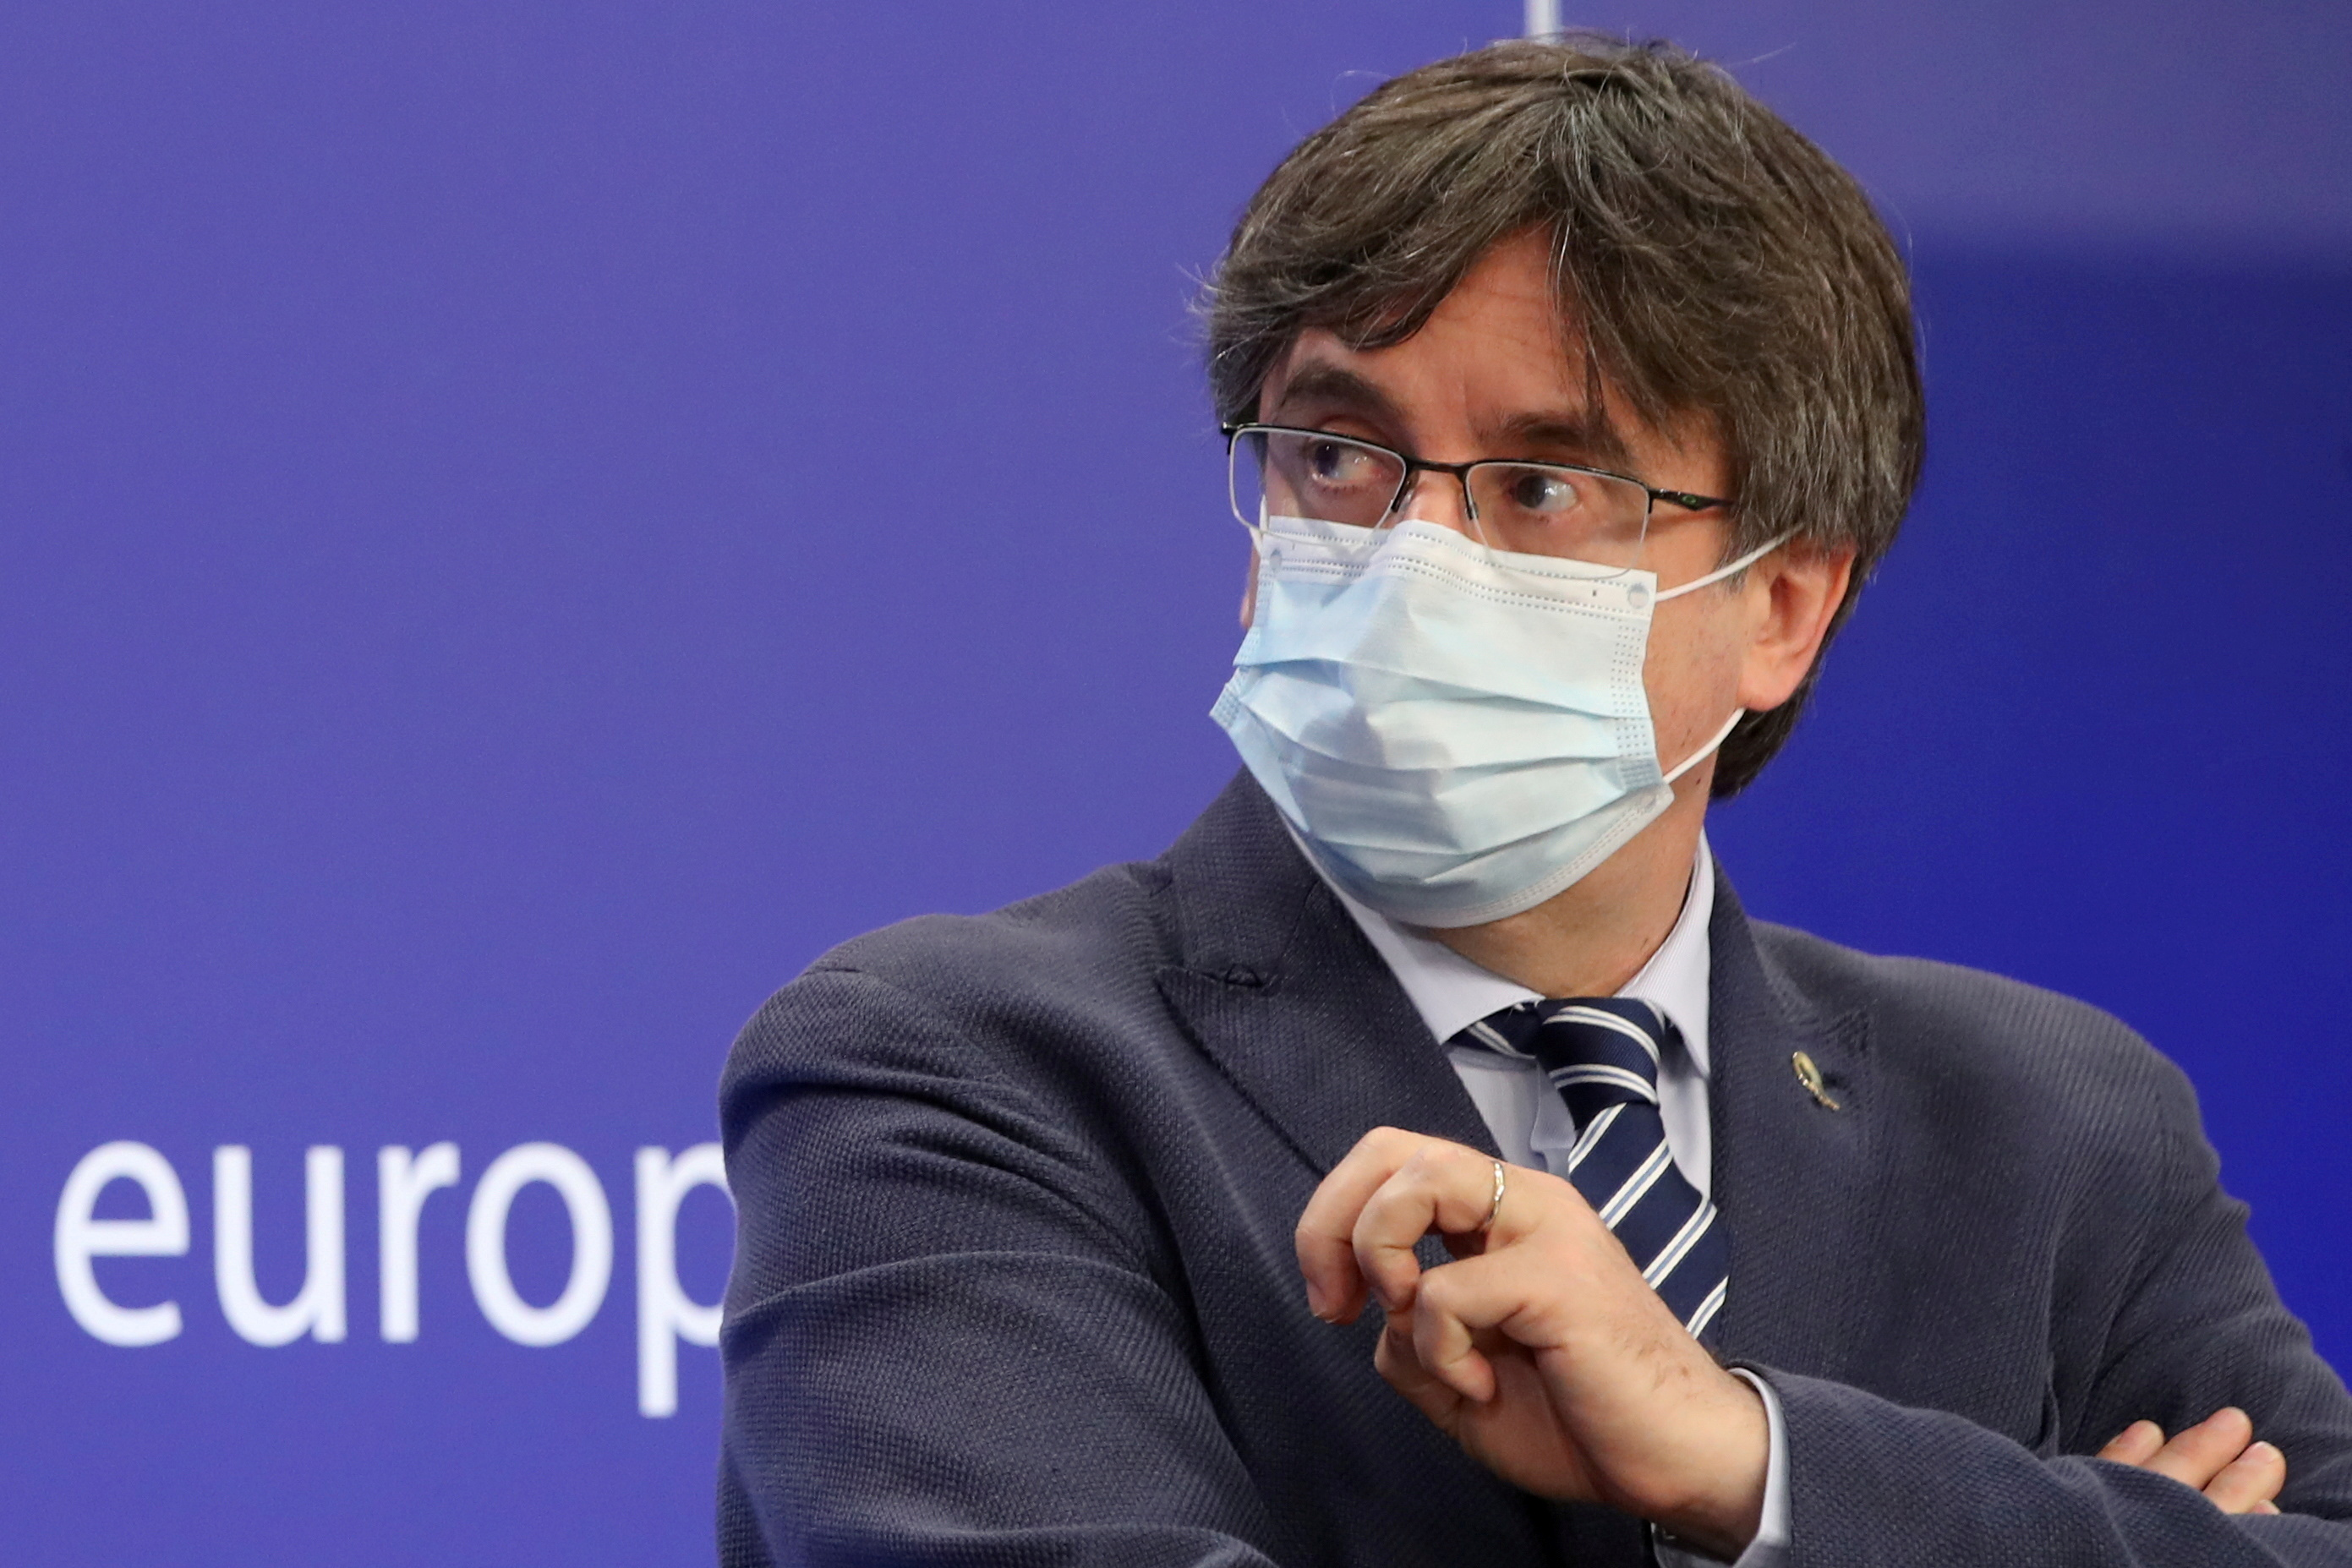 Catalan MEP Carles Puigdemont looks on during a joint news conference with Catalan MEPs Antoni Comin and Clara Ponsati regarding their immunity at the European Parliament, in Brussels, Belgium June 3, 2021. REUTERS/Yves Herman